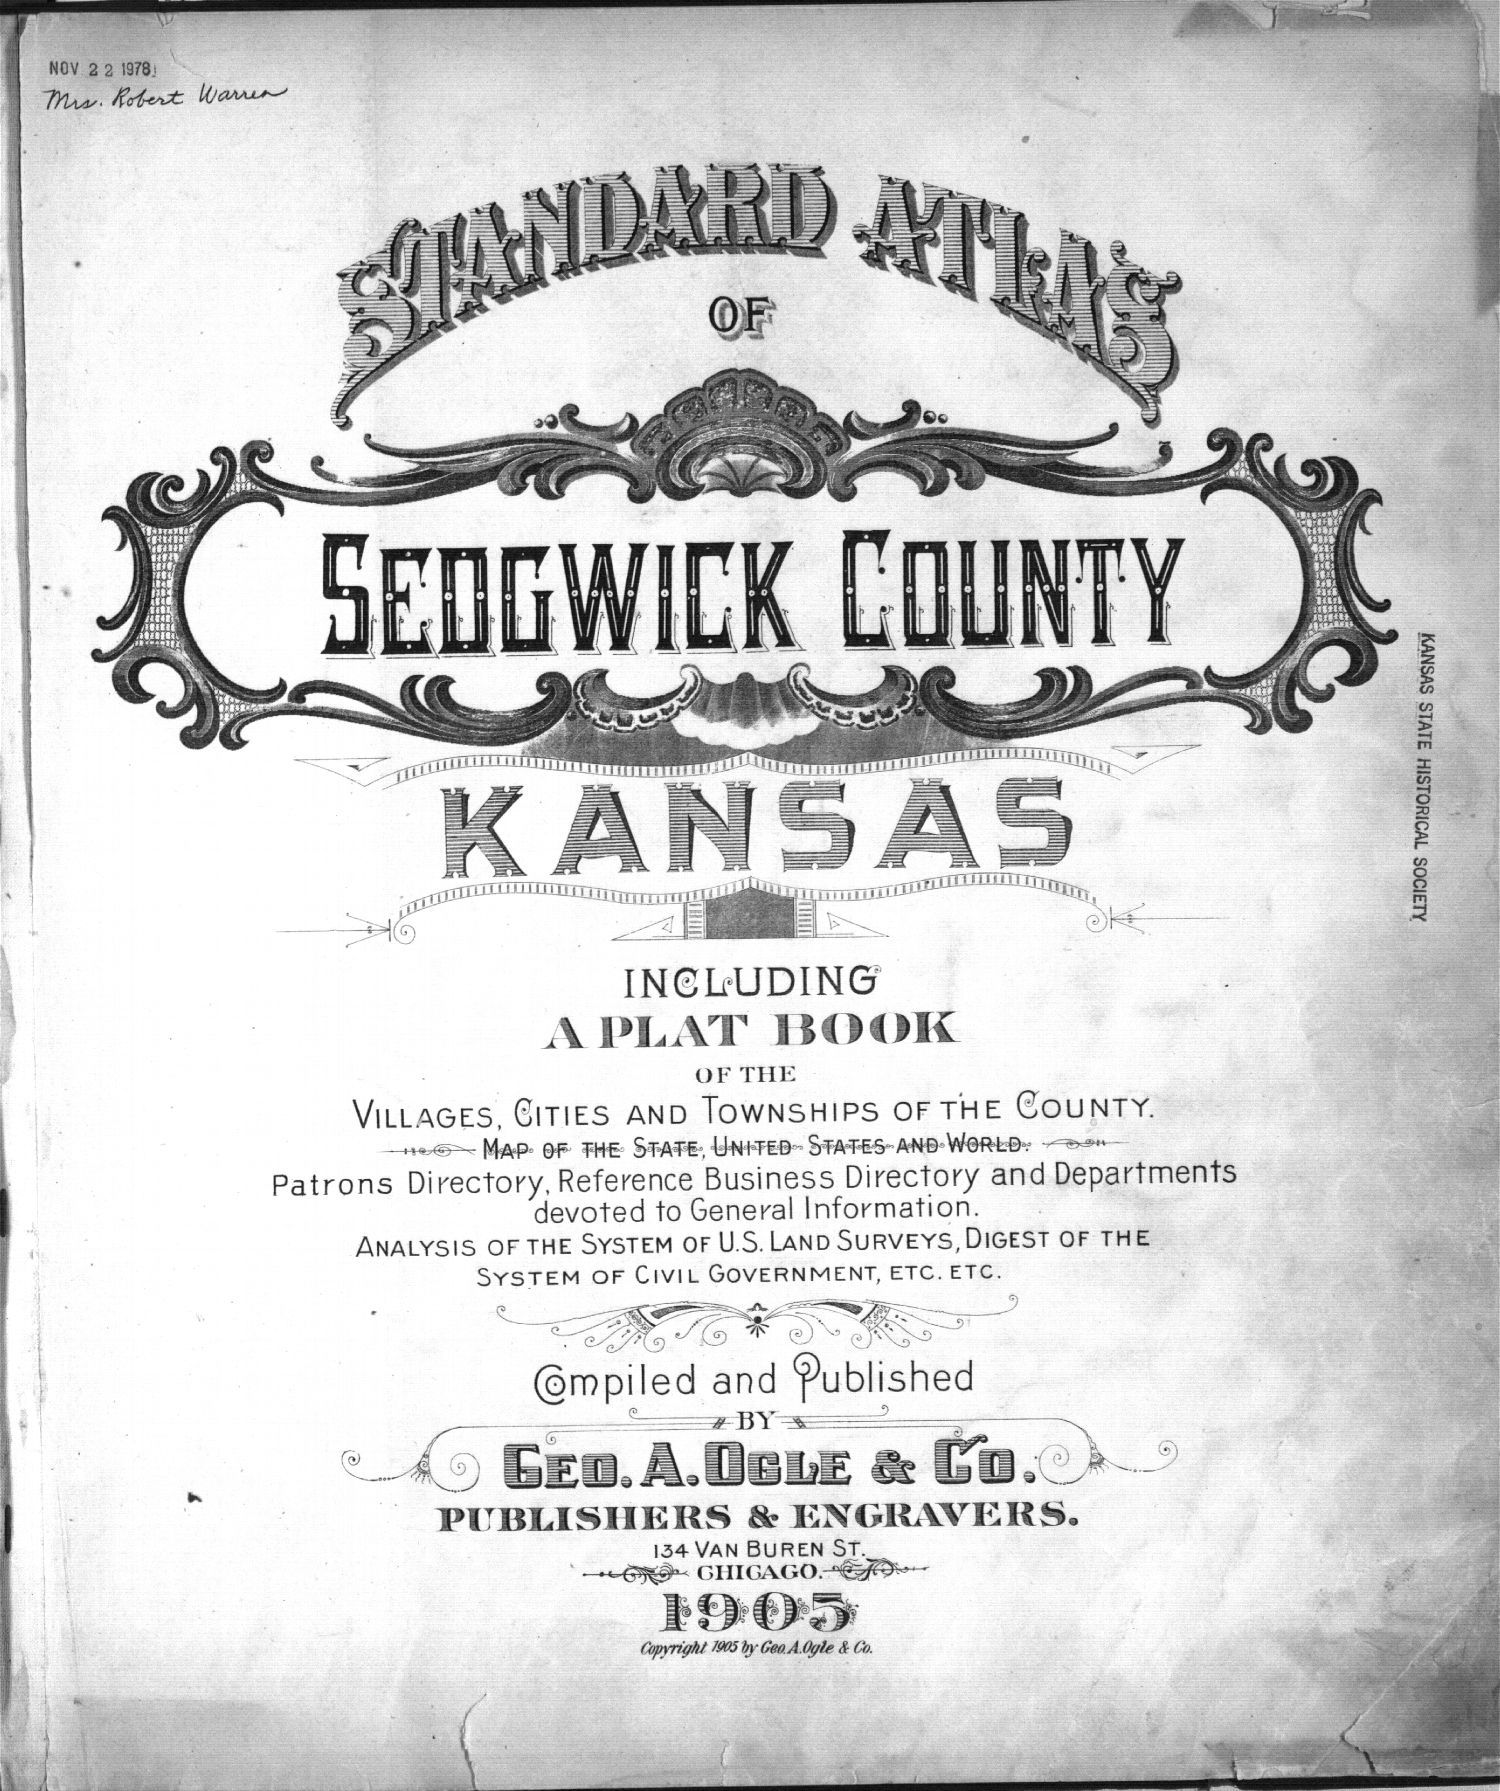 Standard atlas of Sedgwick County, Kansas - Title Page